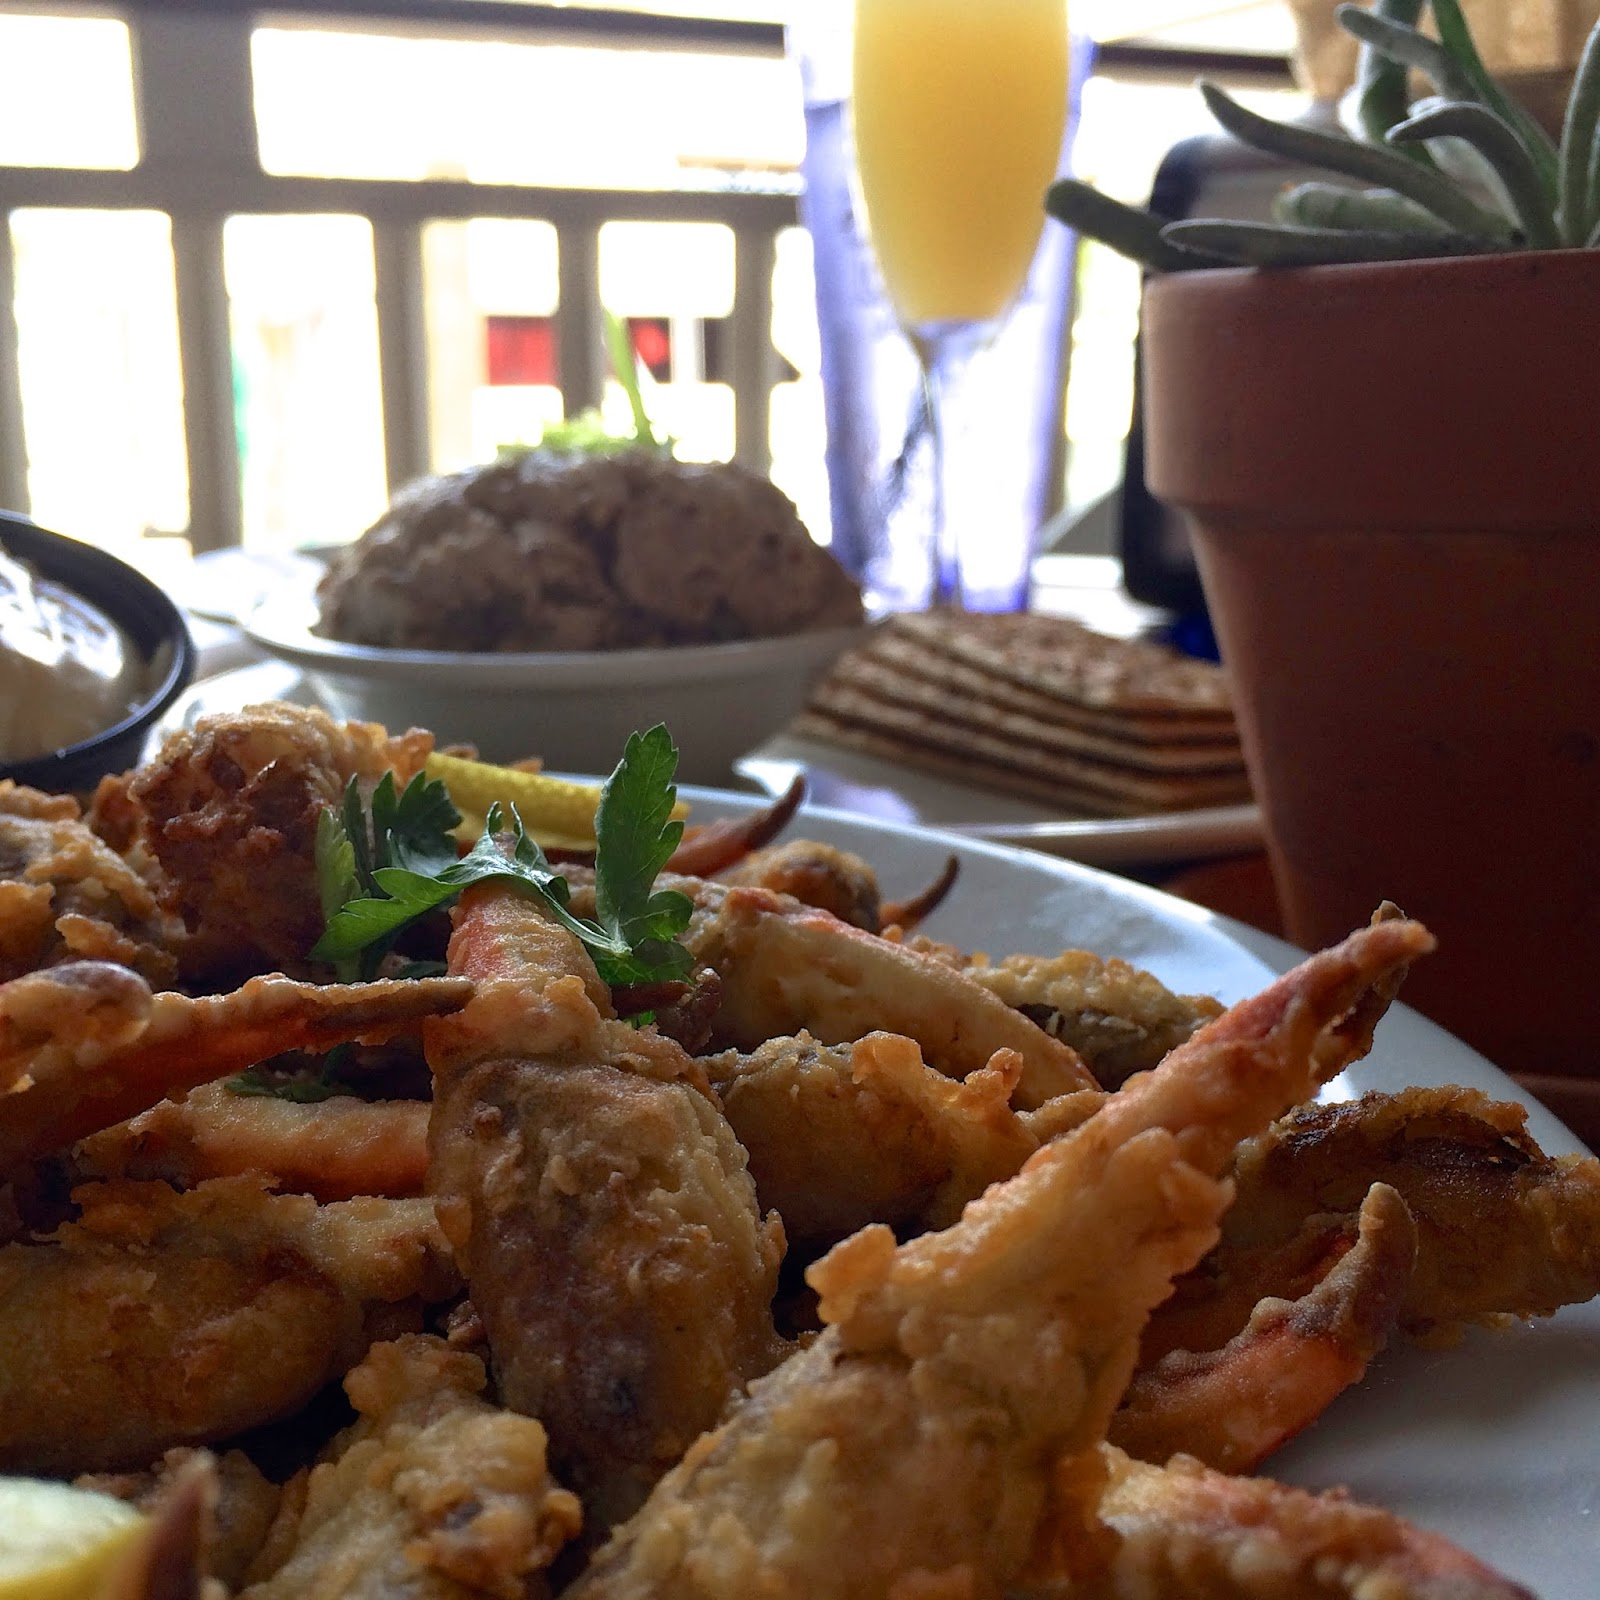 The fried crab claws and smoked tuna dip at Fisher's Brunch